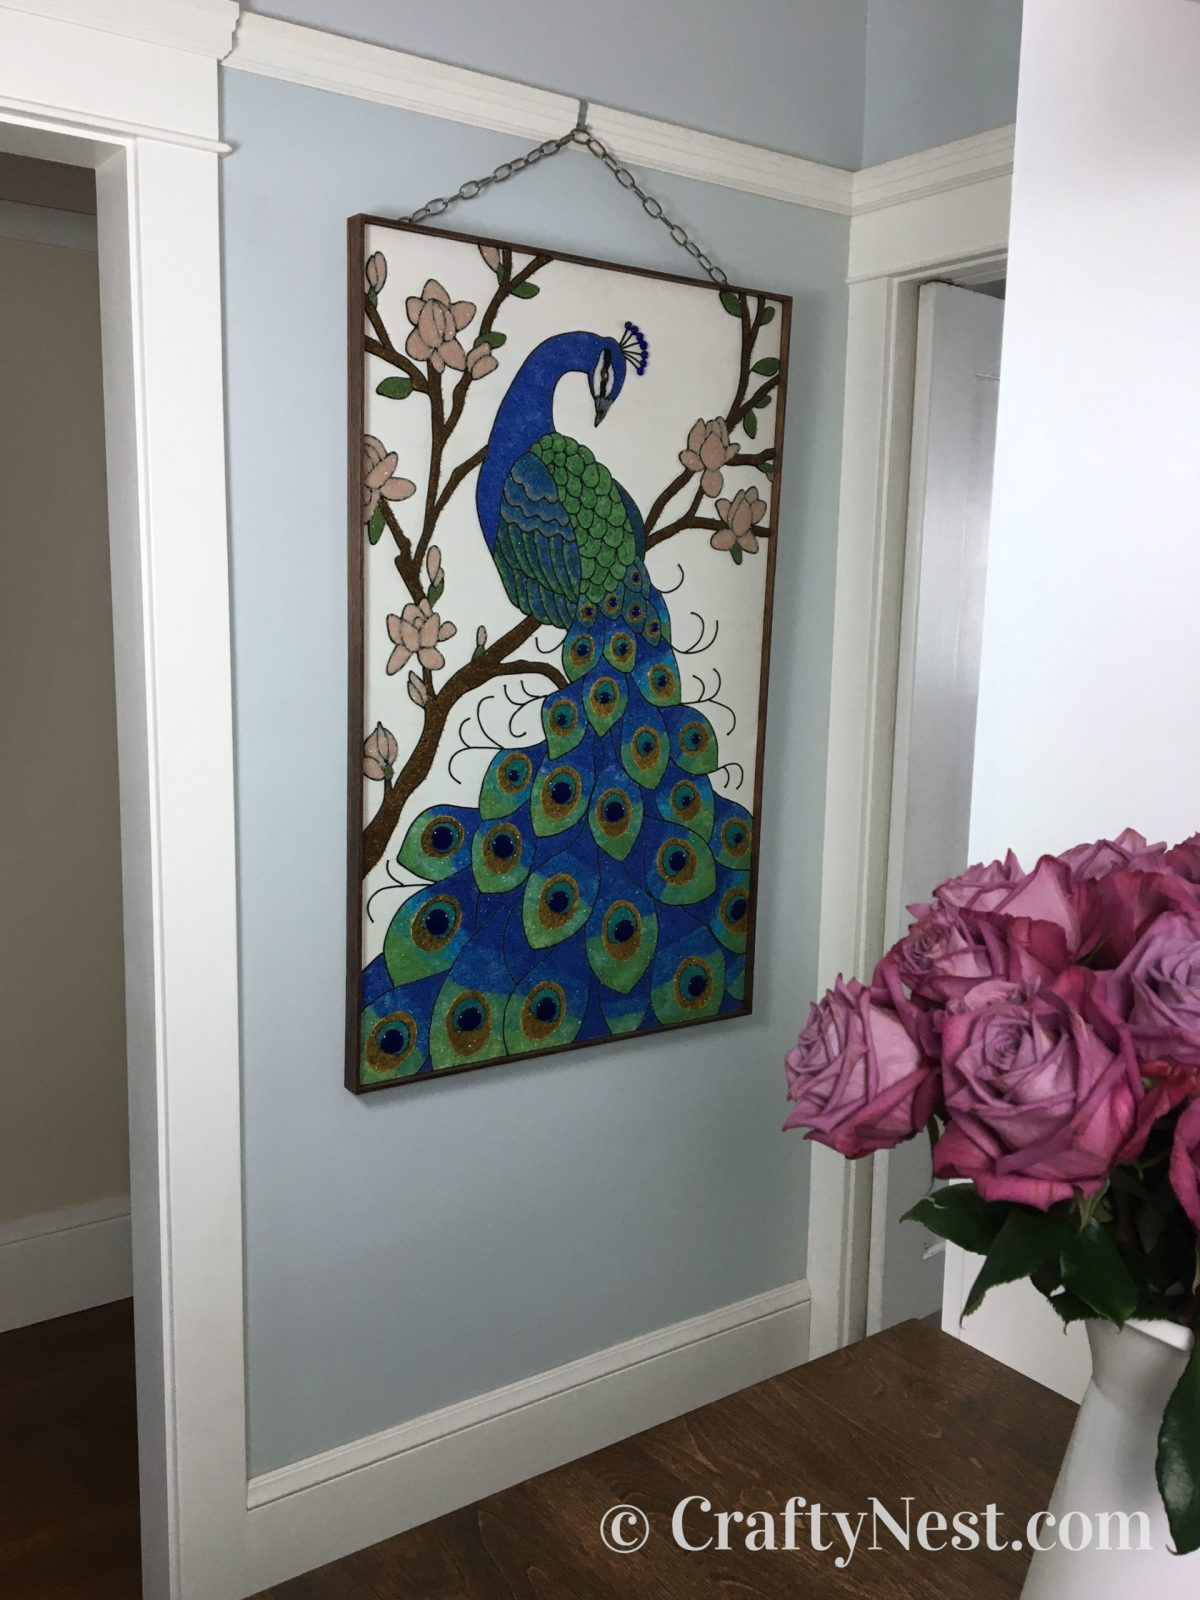 Peacock gravel art hanging on the wall, photo